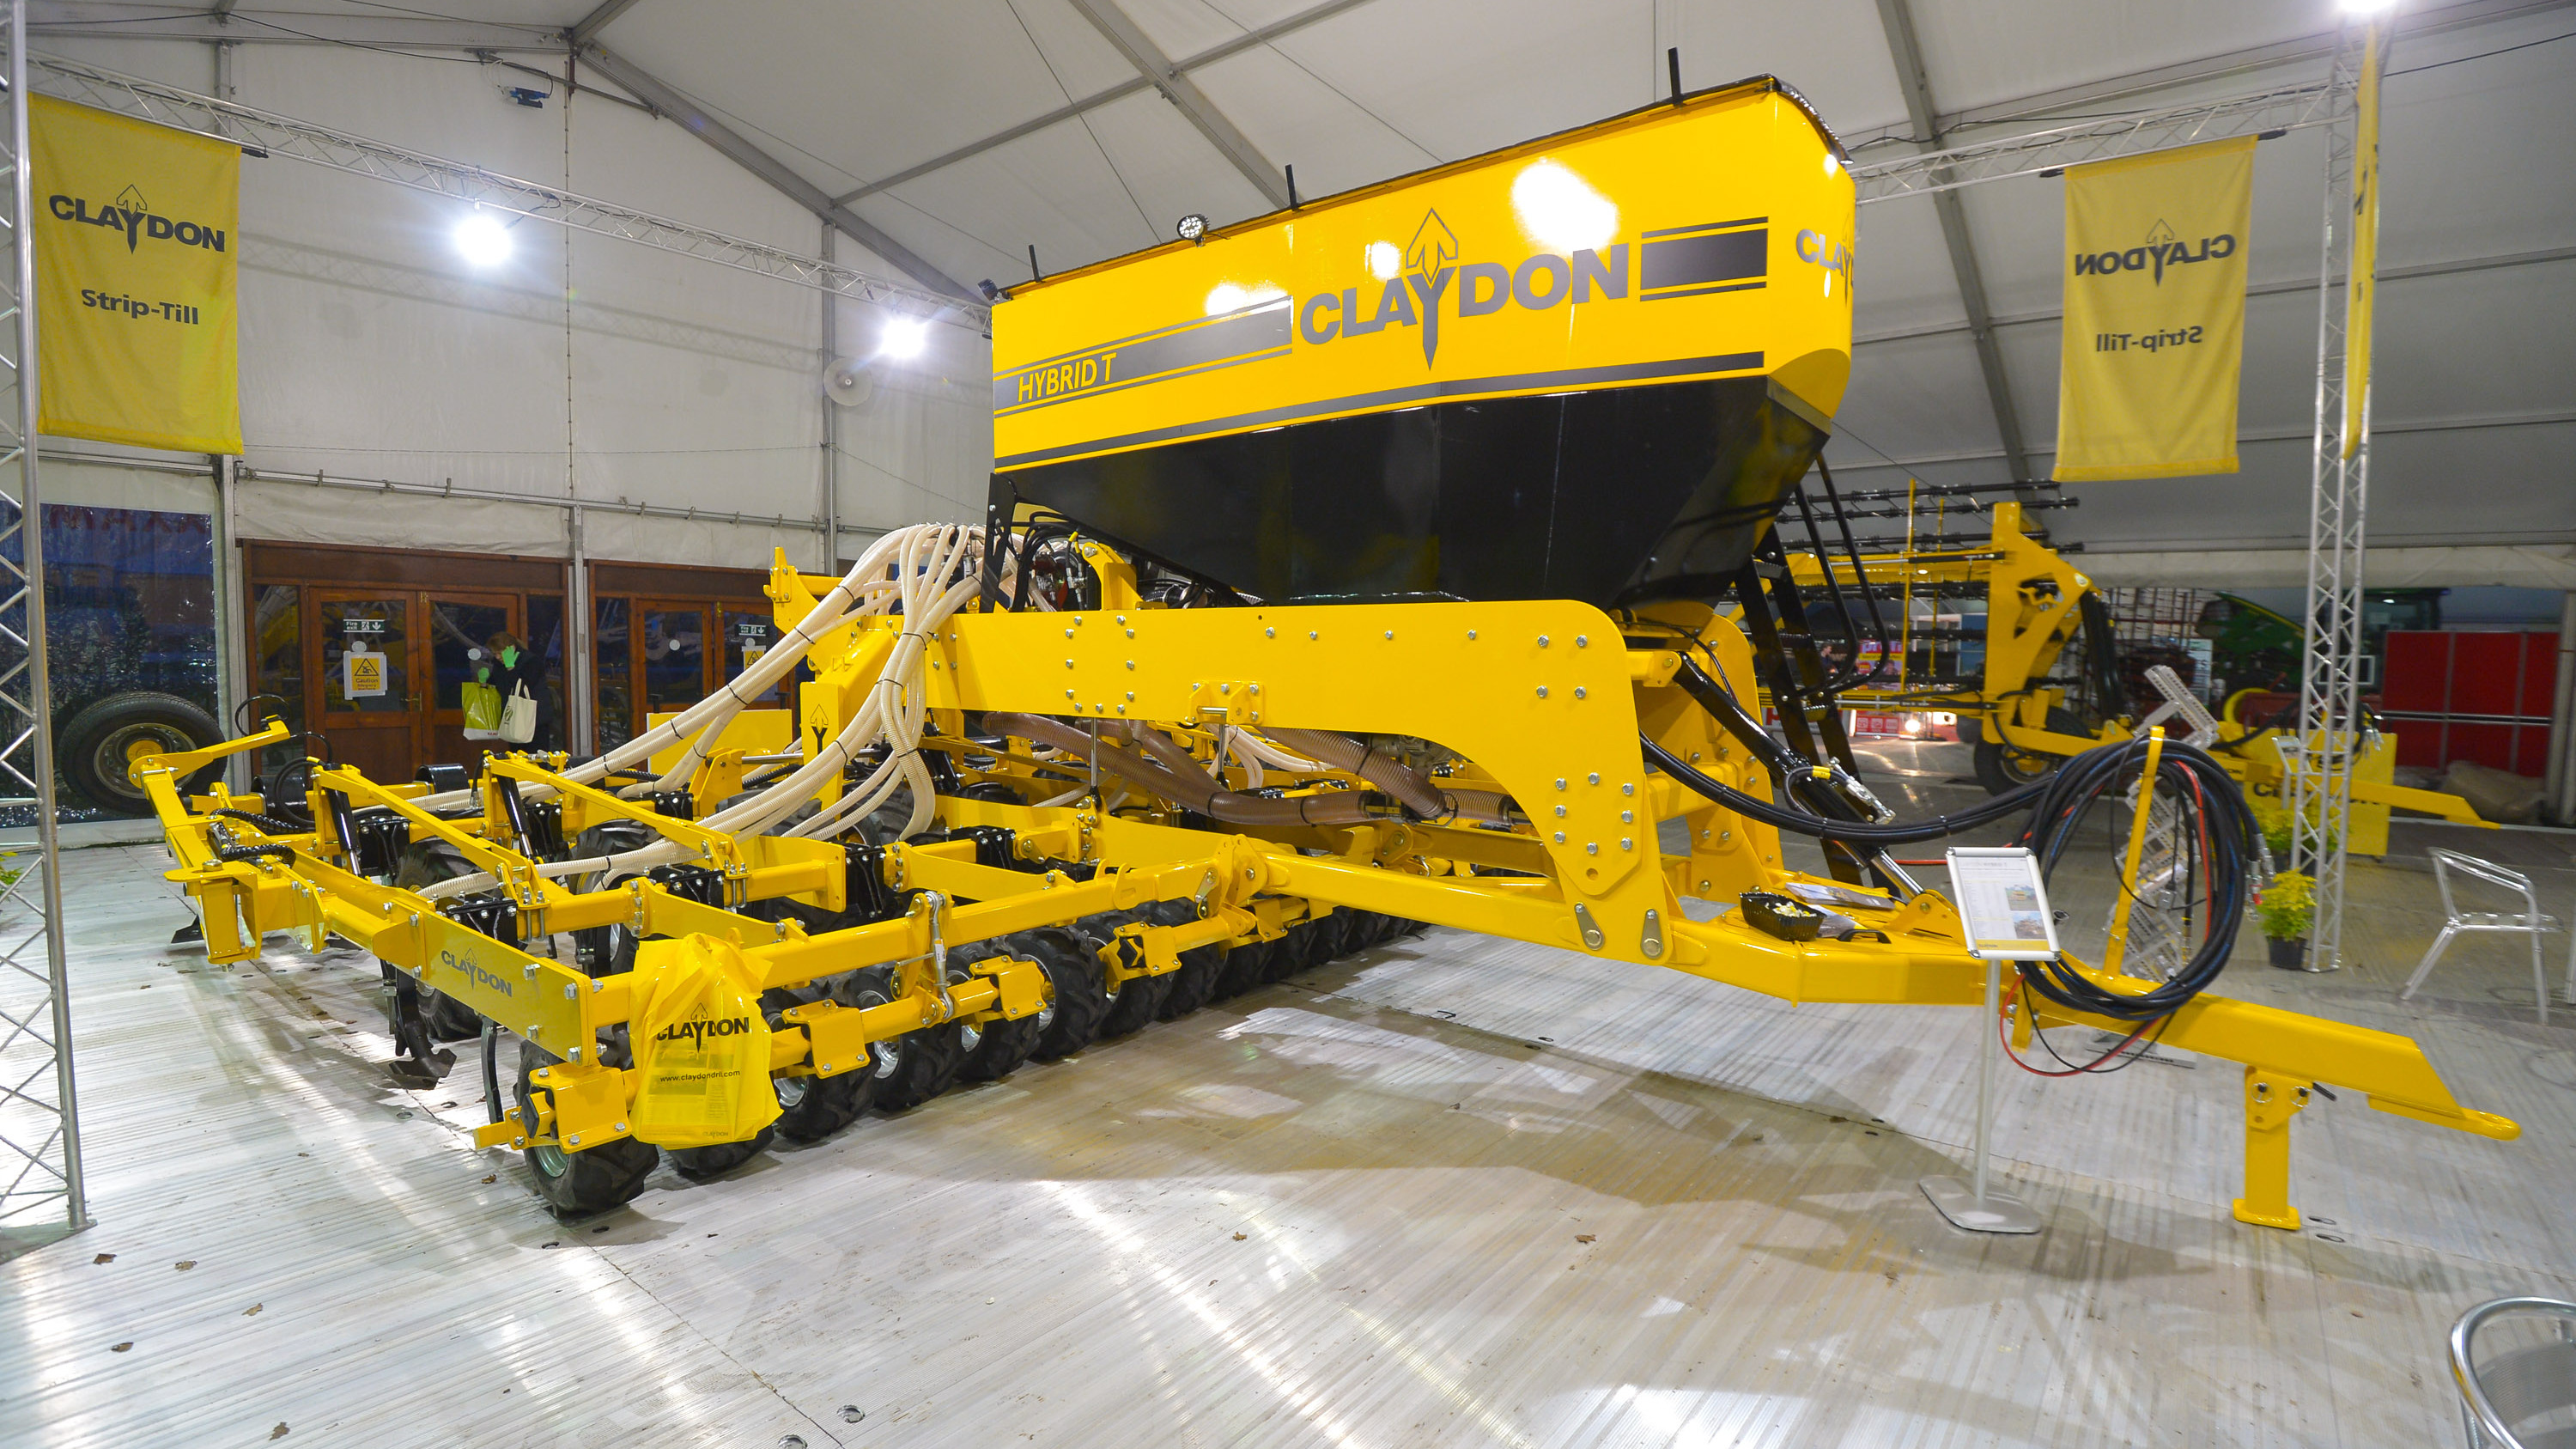 Claydon front press option for Hybrid T drill